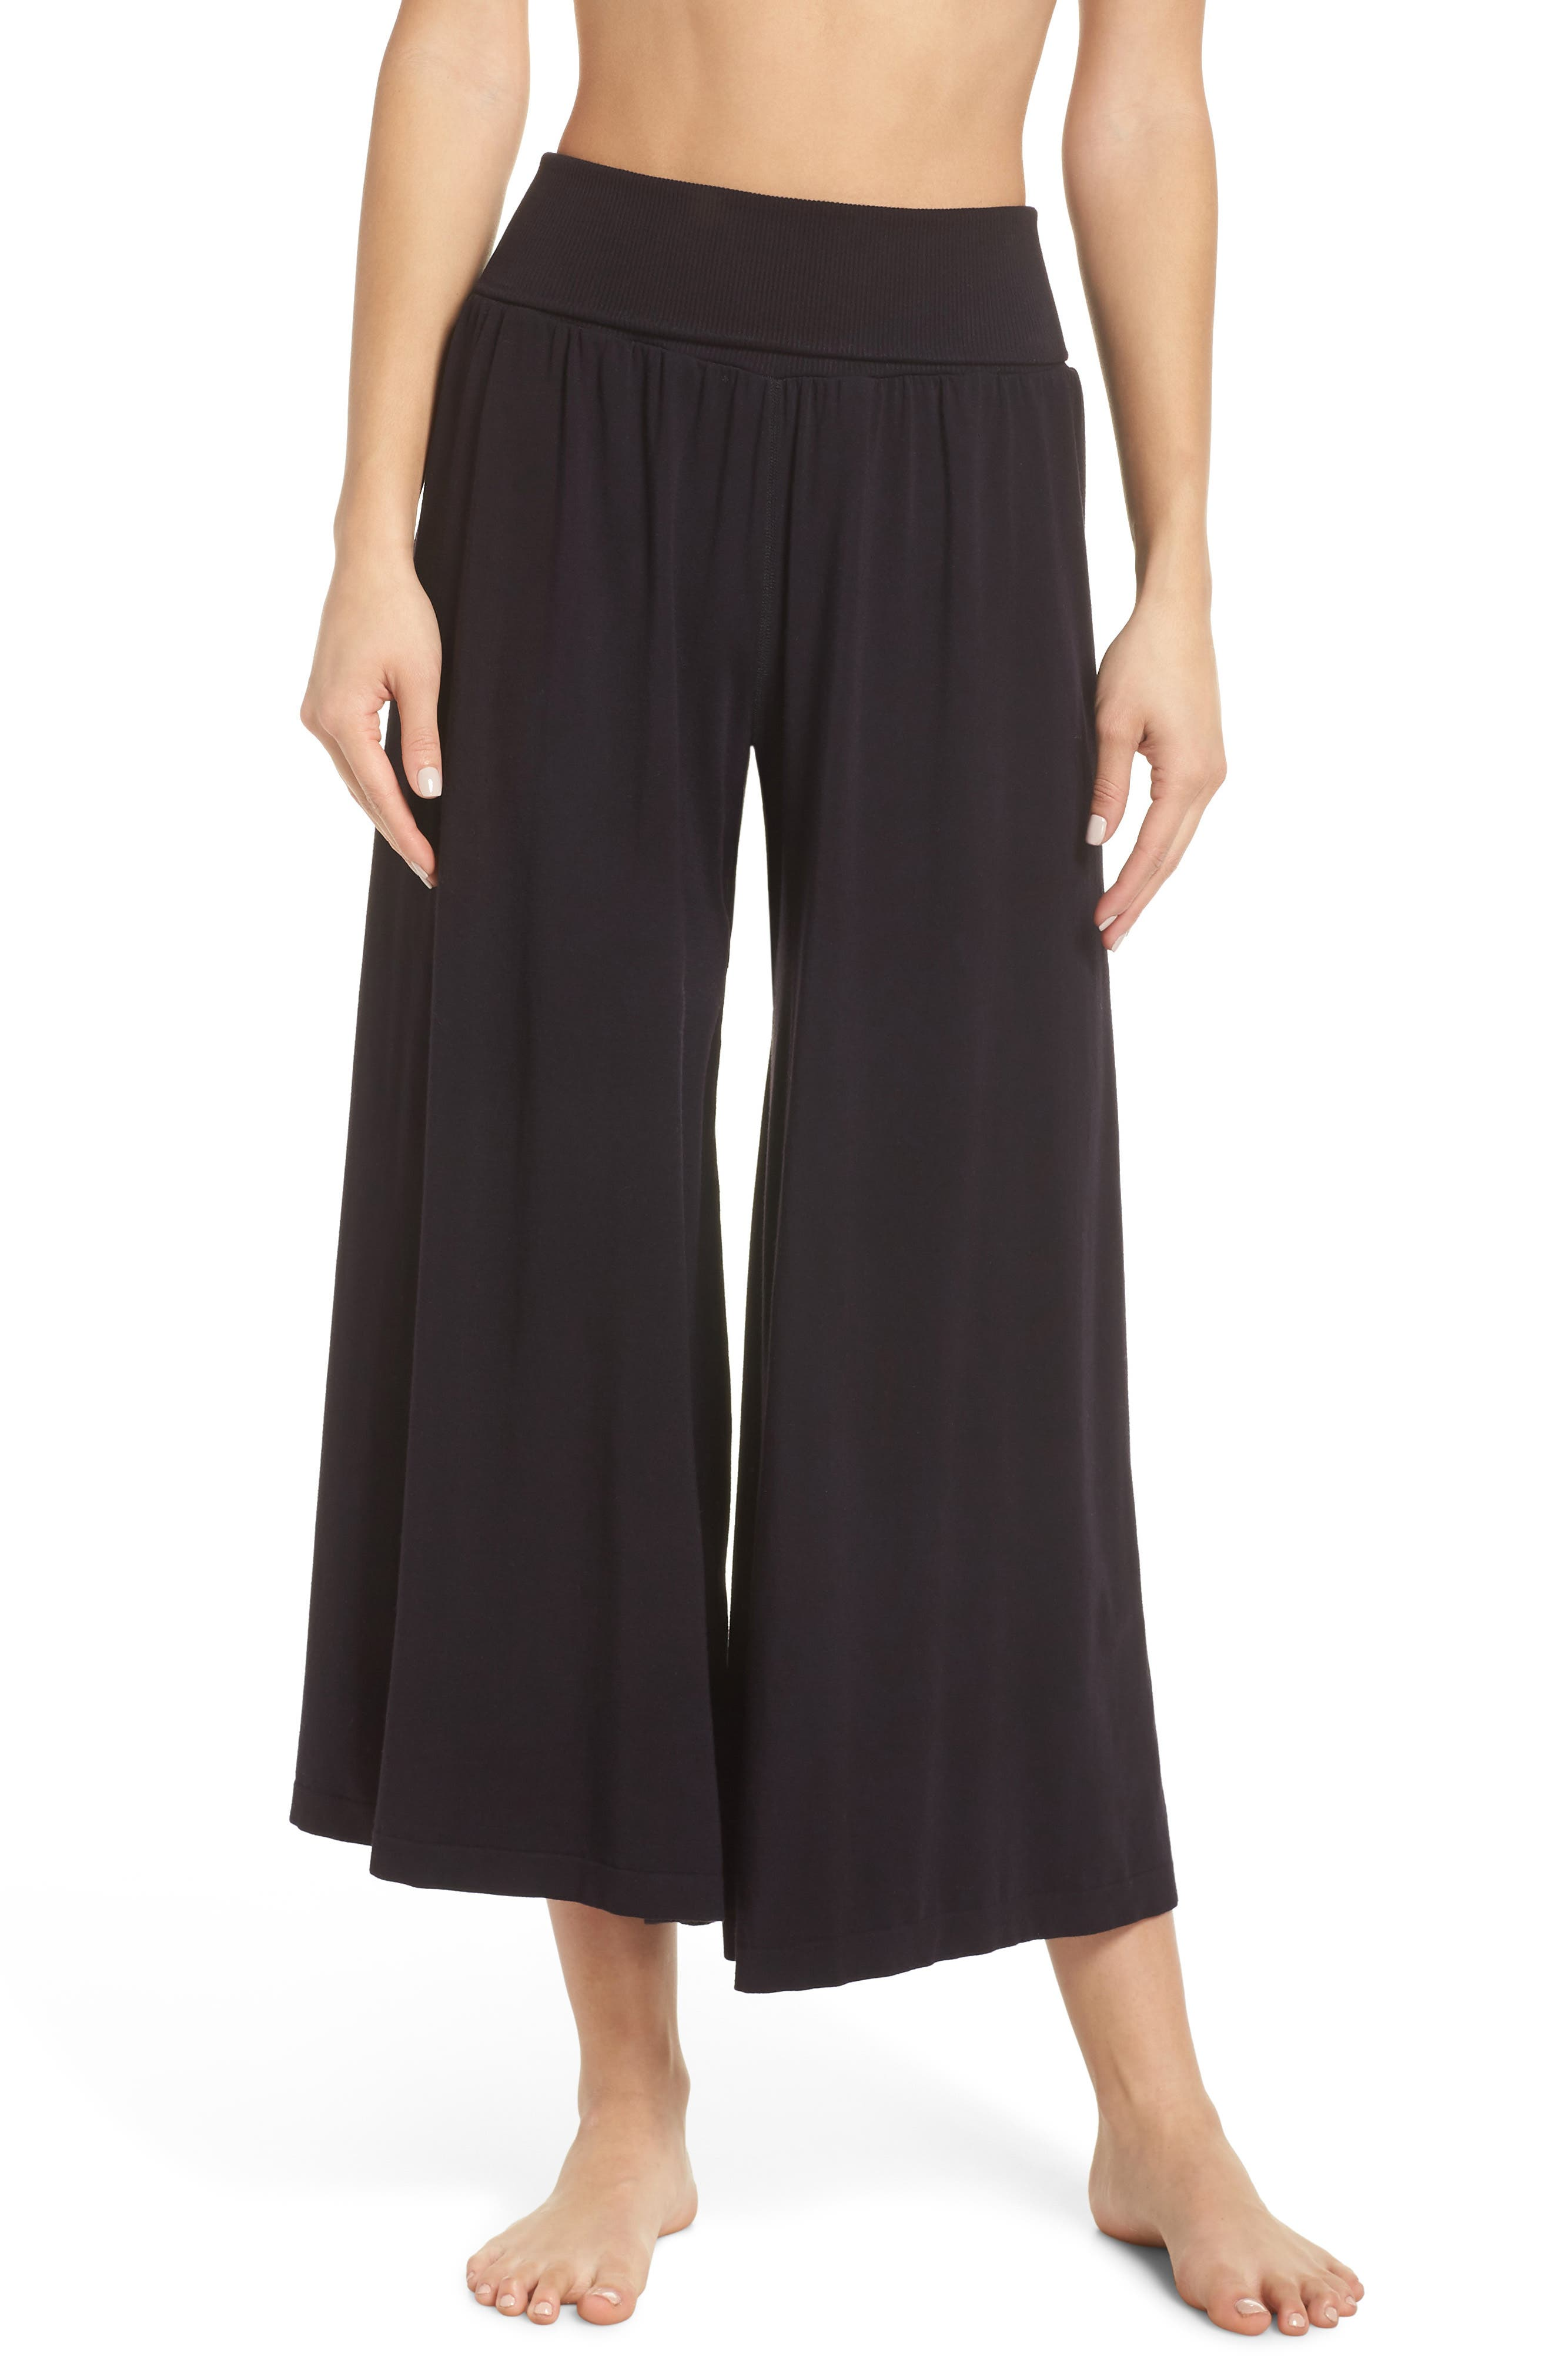 FREE PEOPLE MOVEMENT Free People Fp Movement Willow Wide Leg Pants in Black